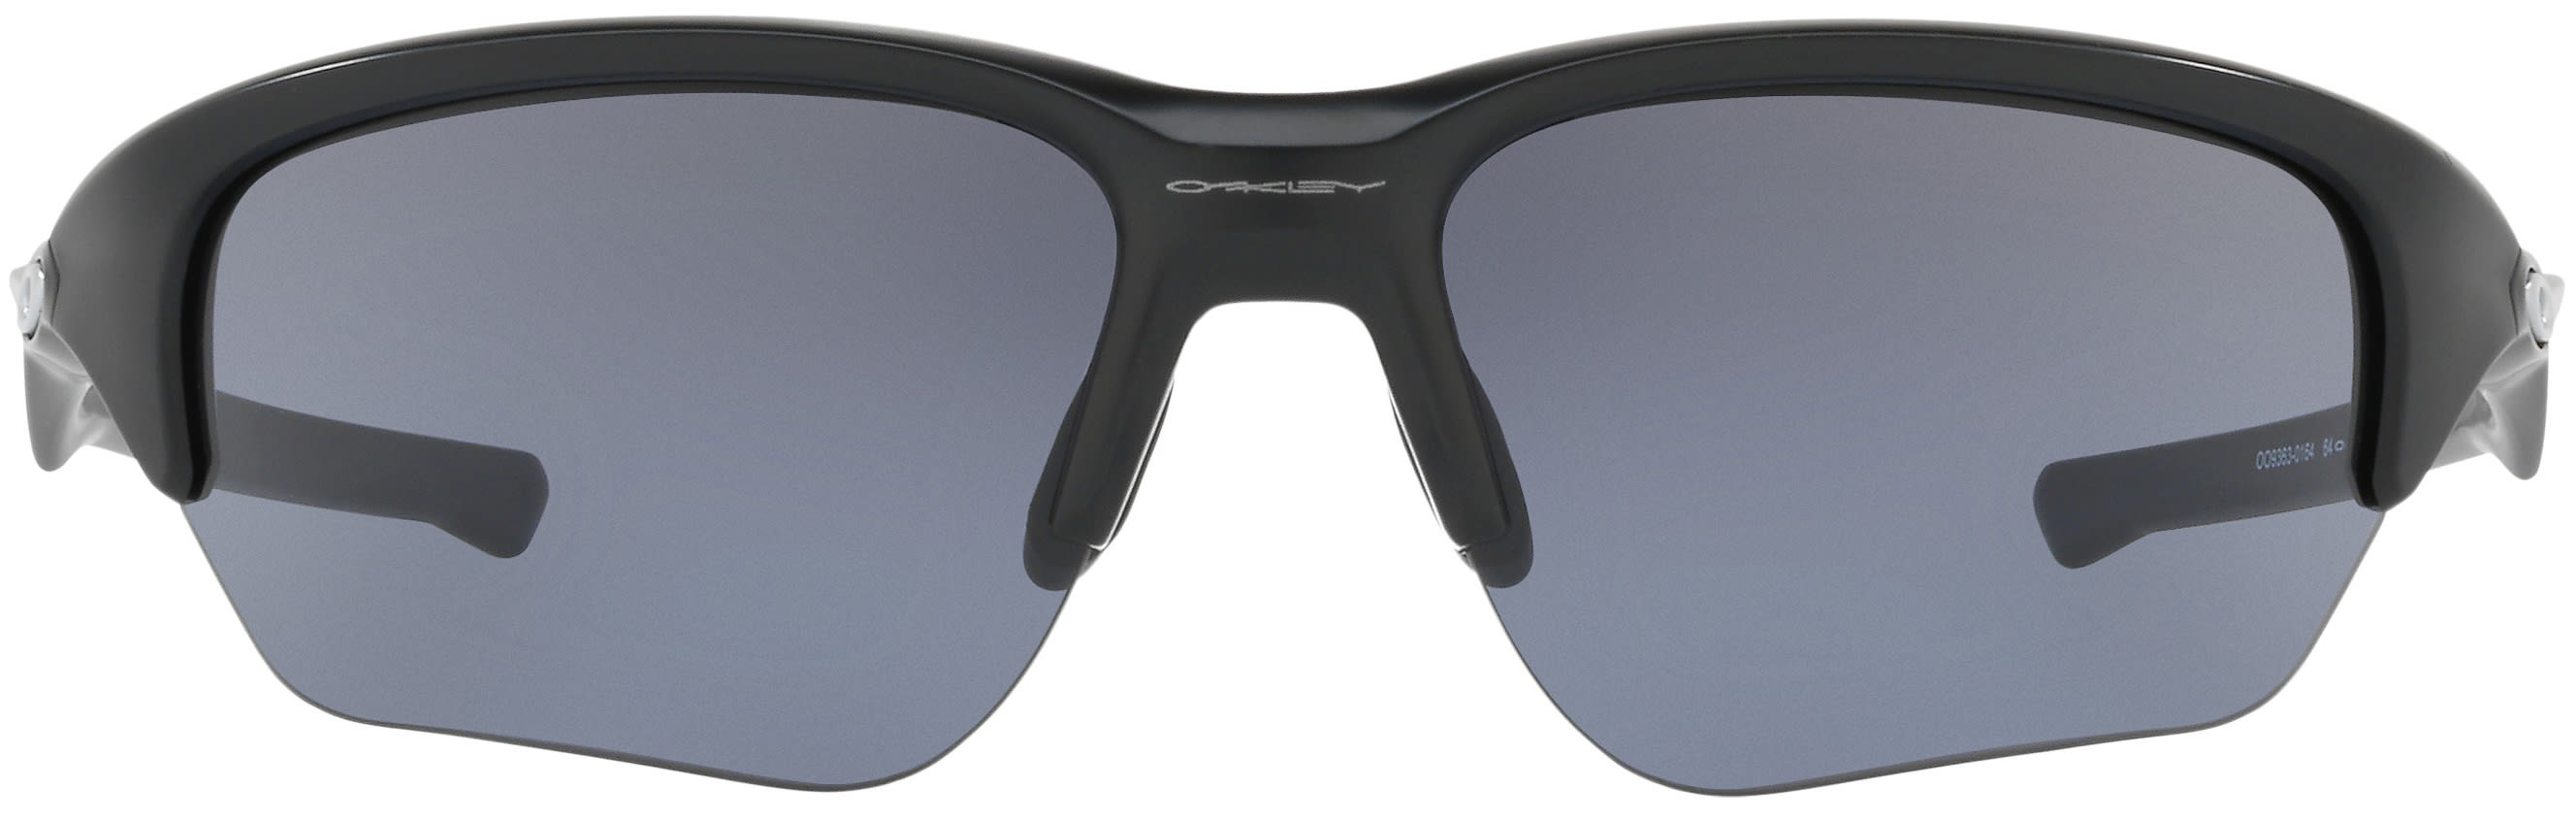 935e777d03aa1 Oakley Flak Beta Sunglasses - thumbnail 2